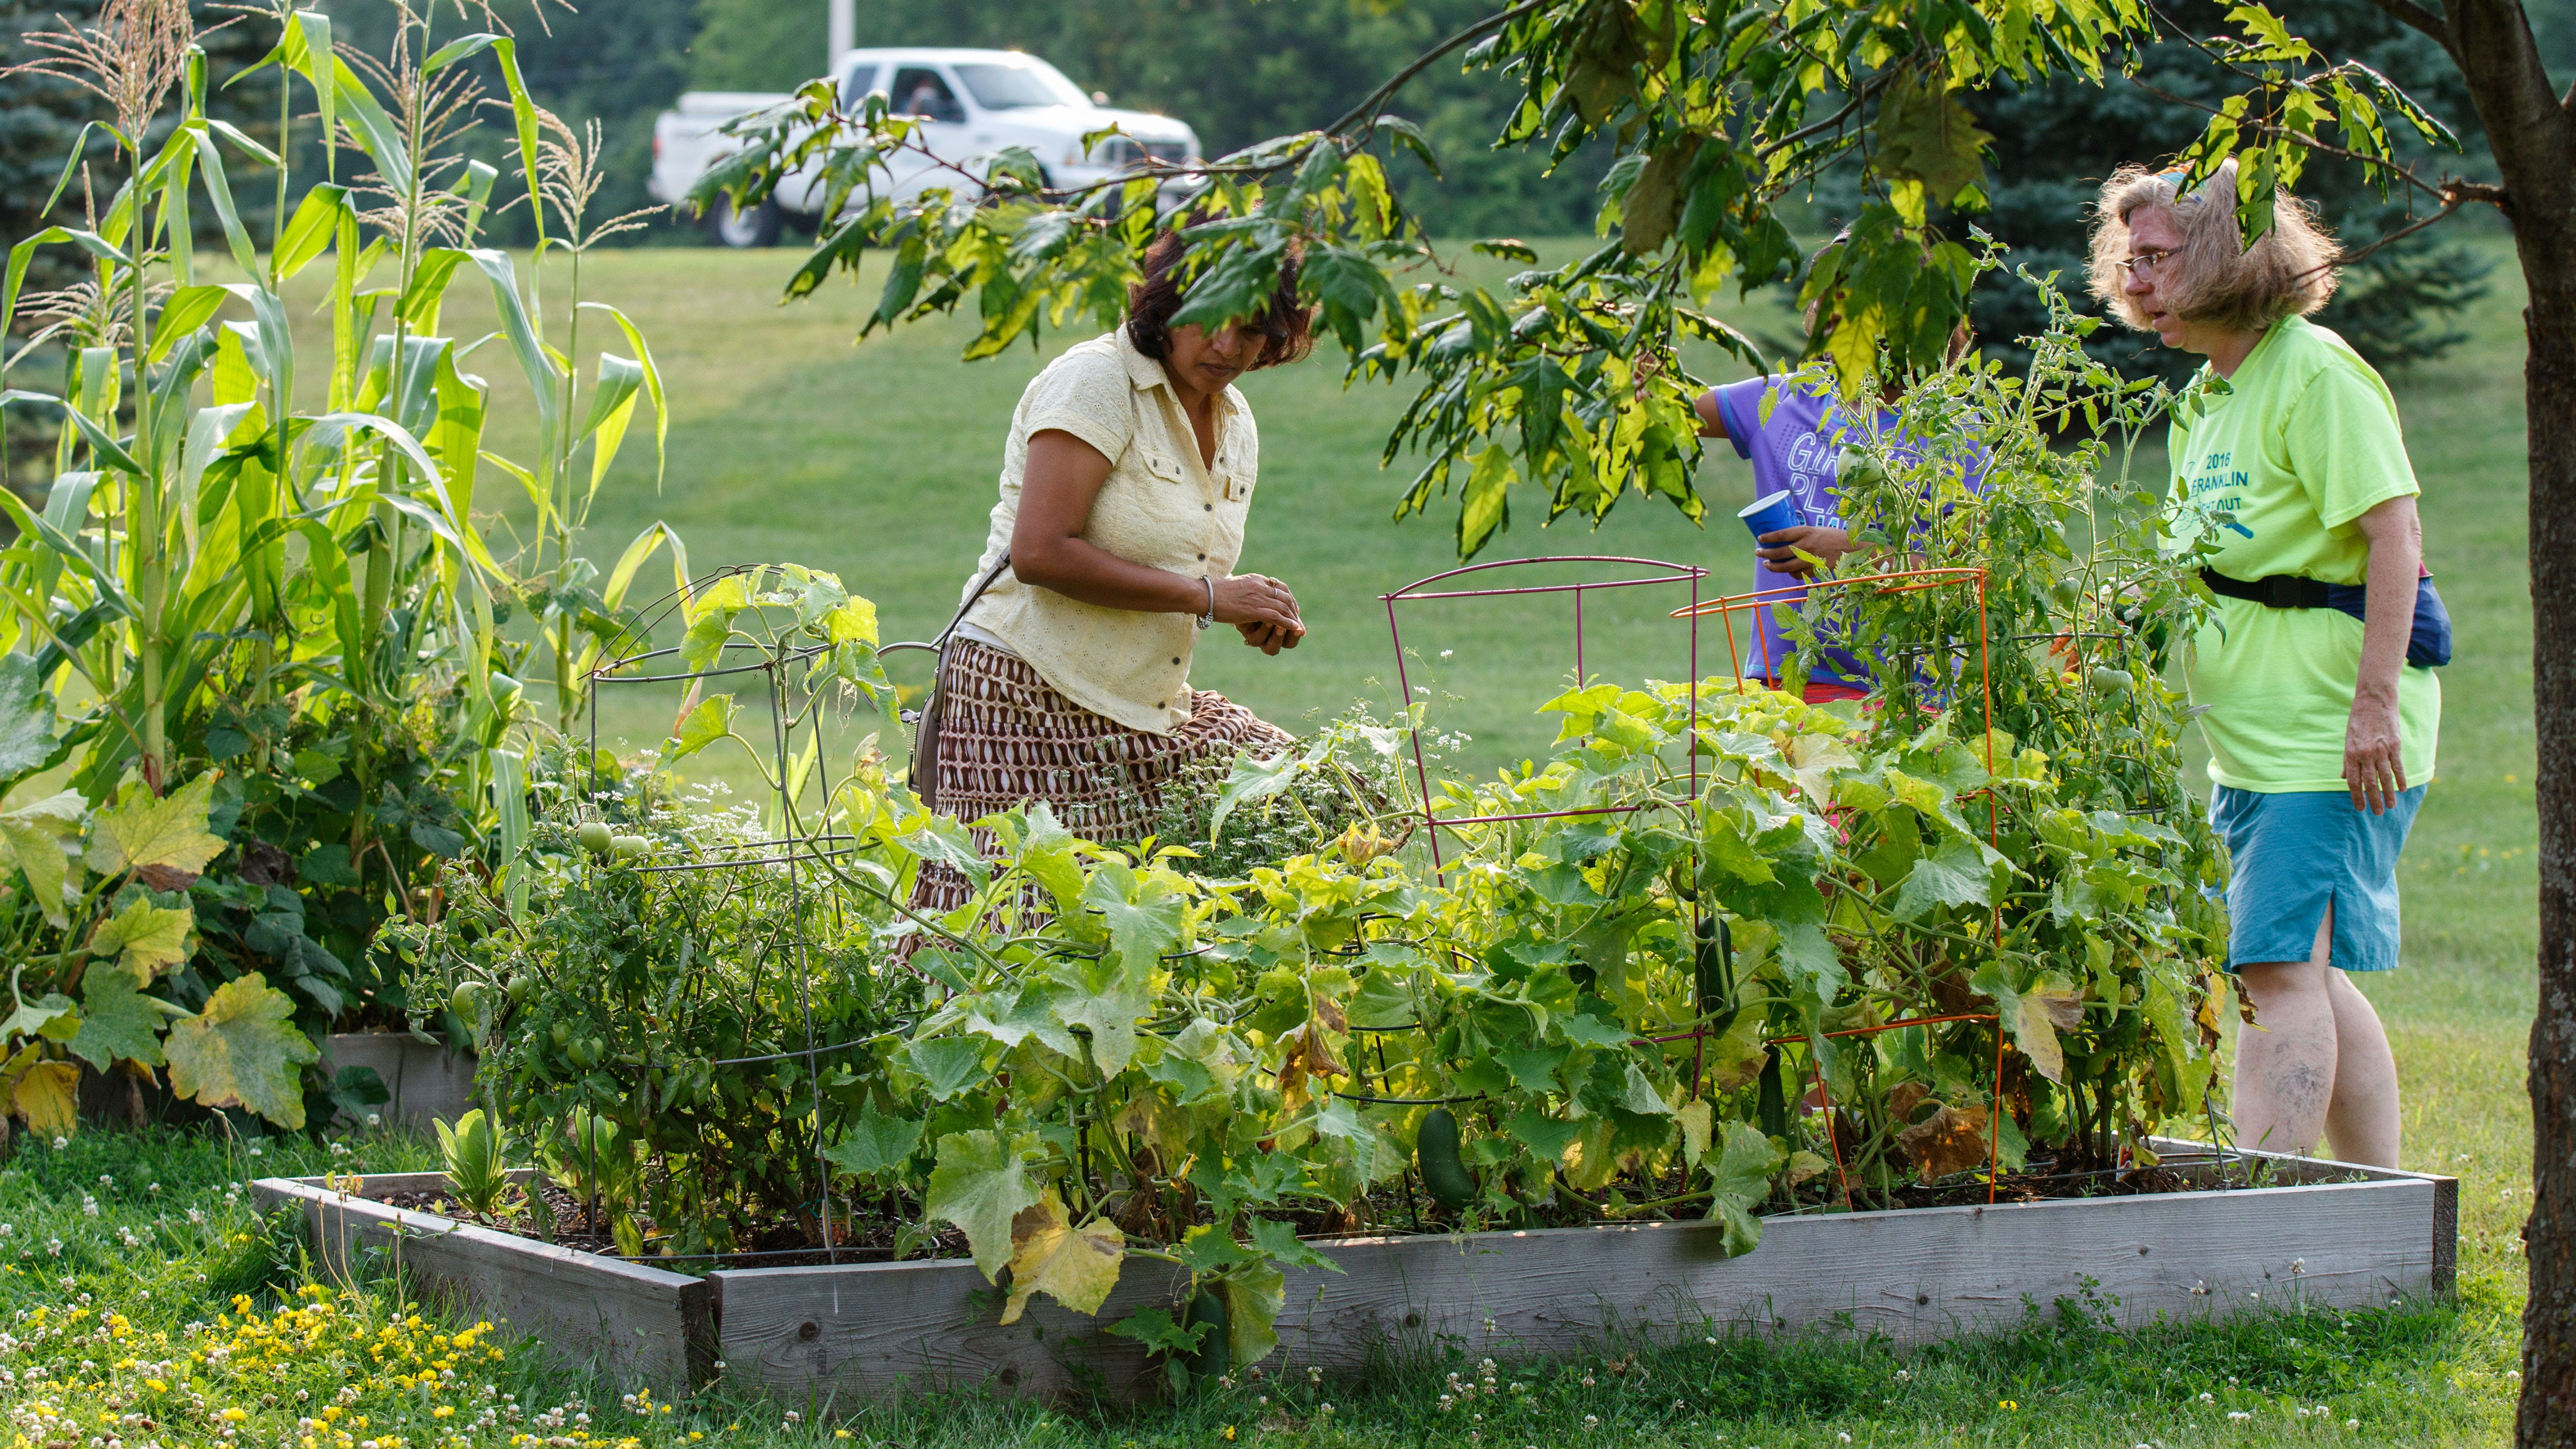 Growing vegetables can be tough for first timers. Here are 7 tips to get started.